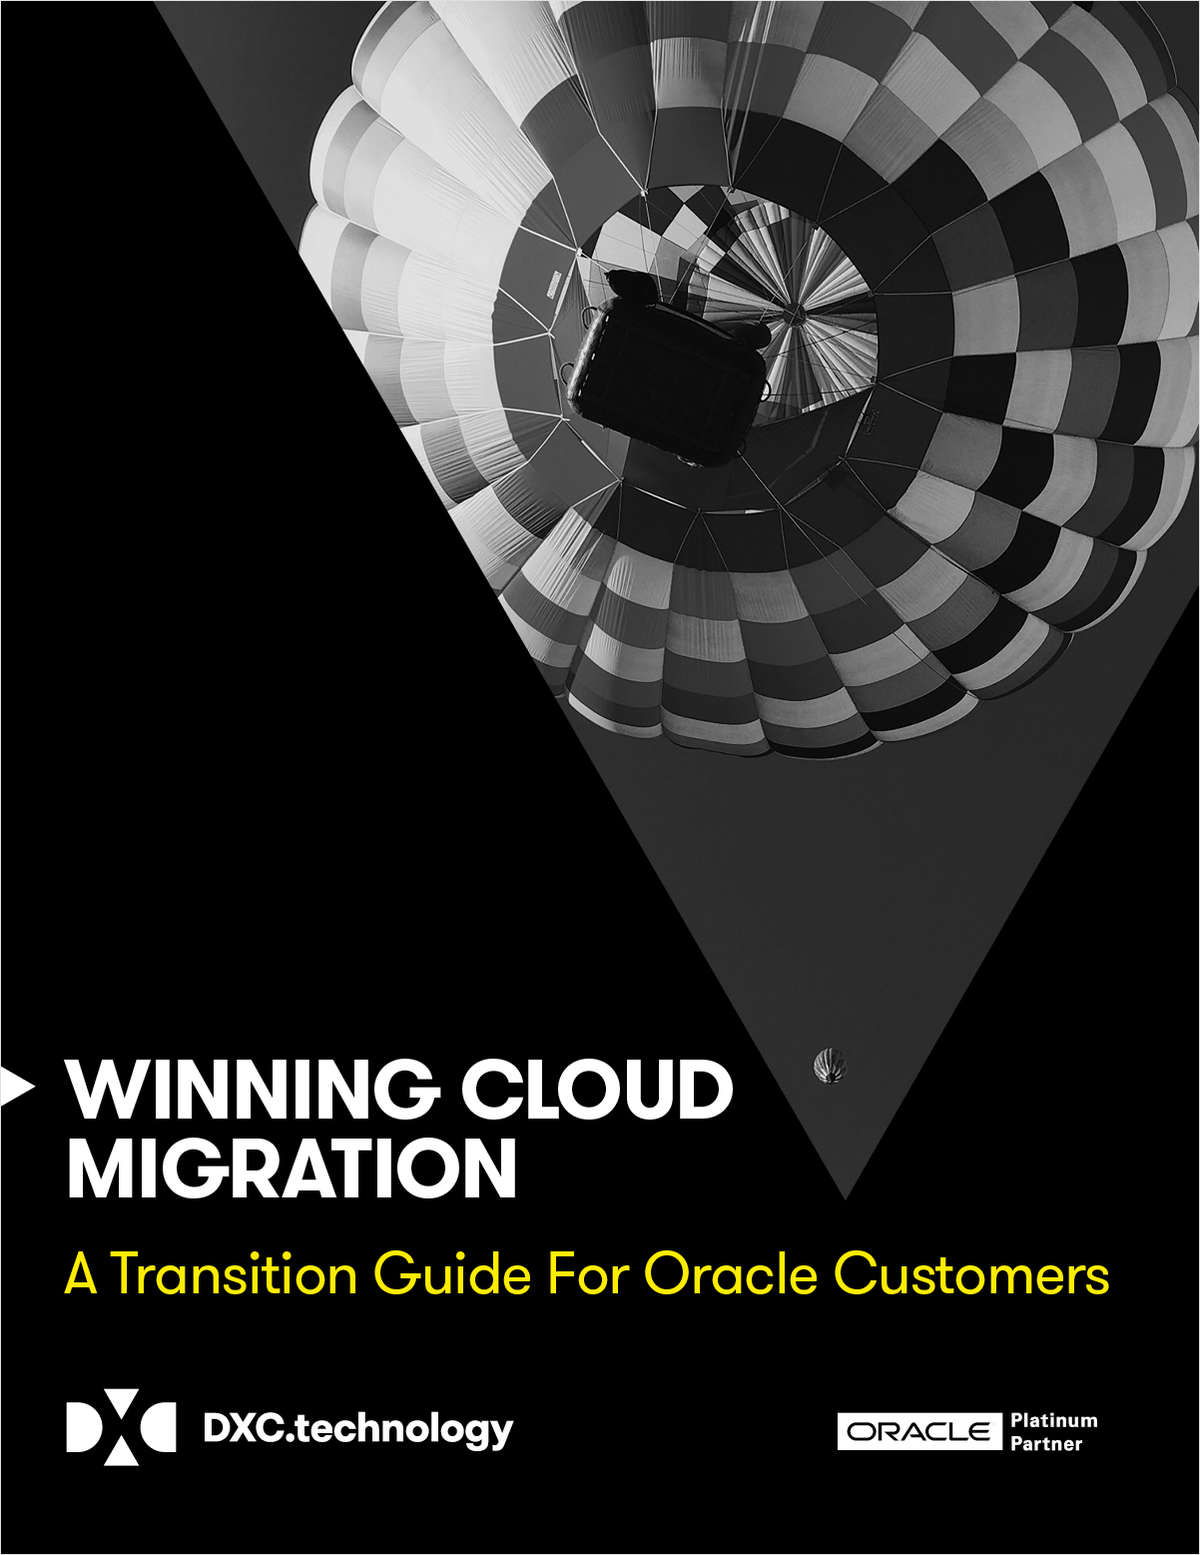 Winning Cloud Migration: A Transition Guide For Oracle Customers